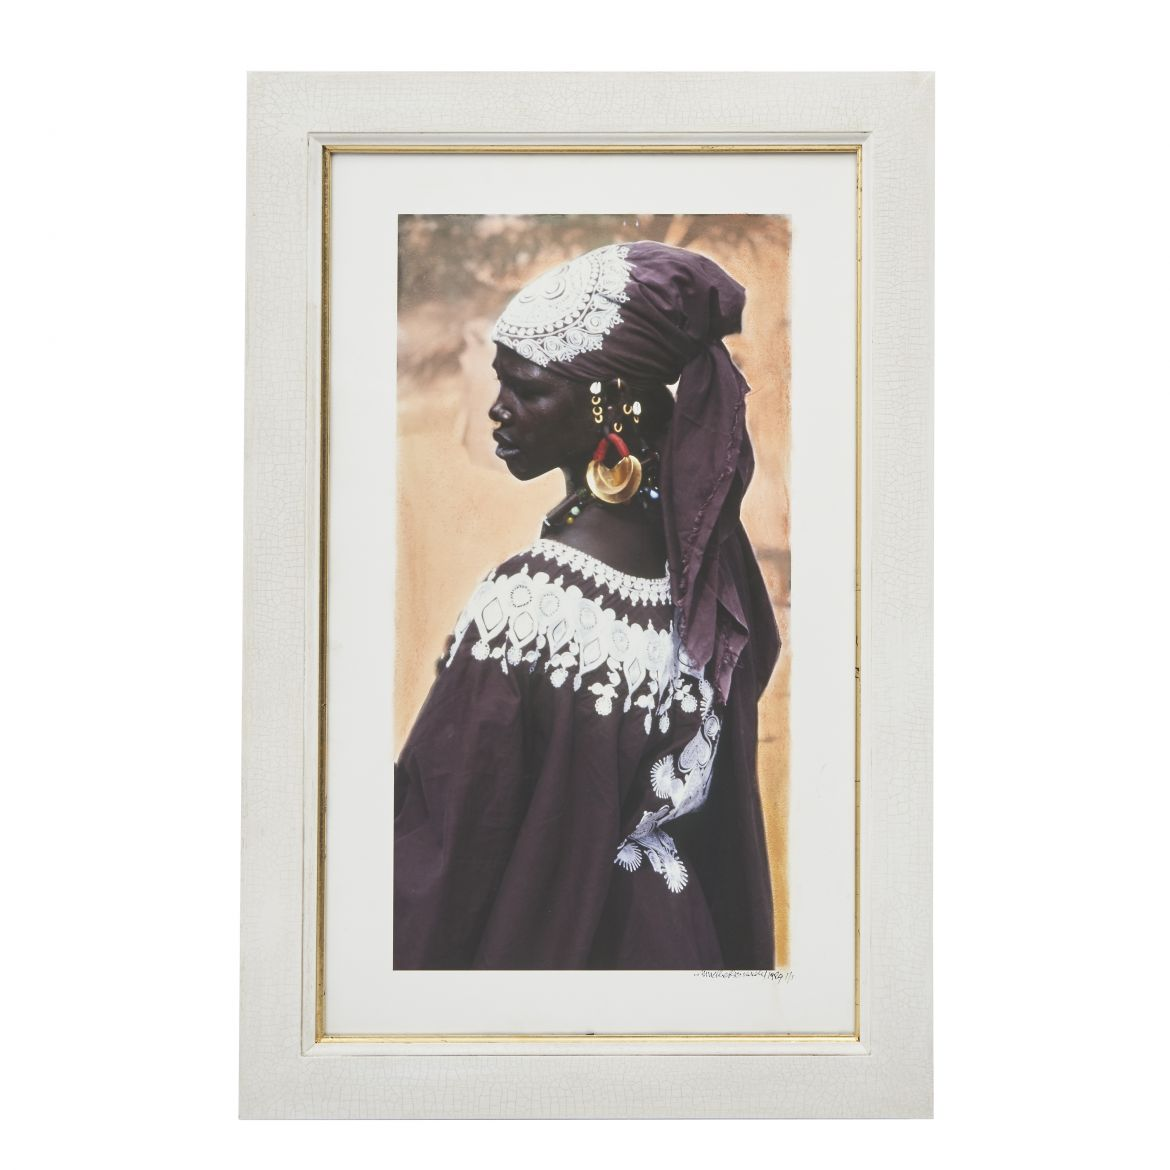 Mali Woman with Embroidered Head Scarf